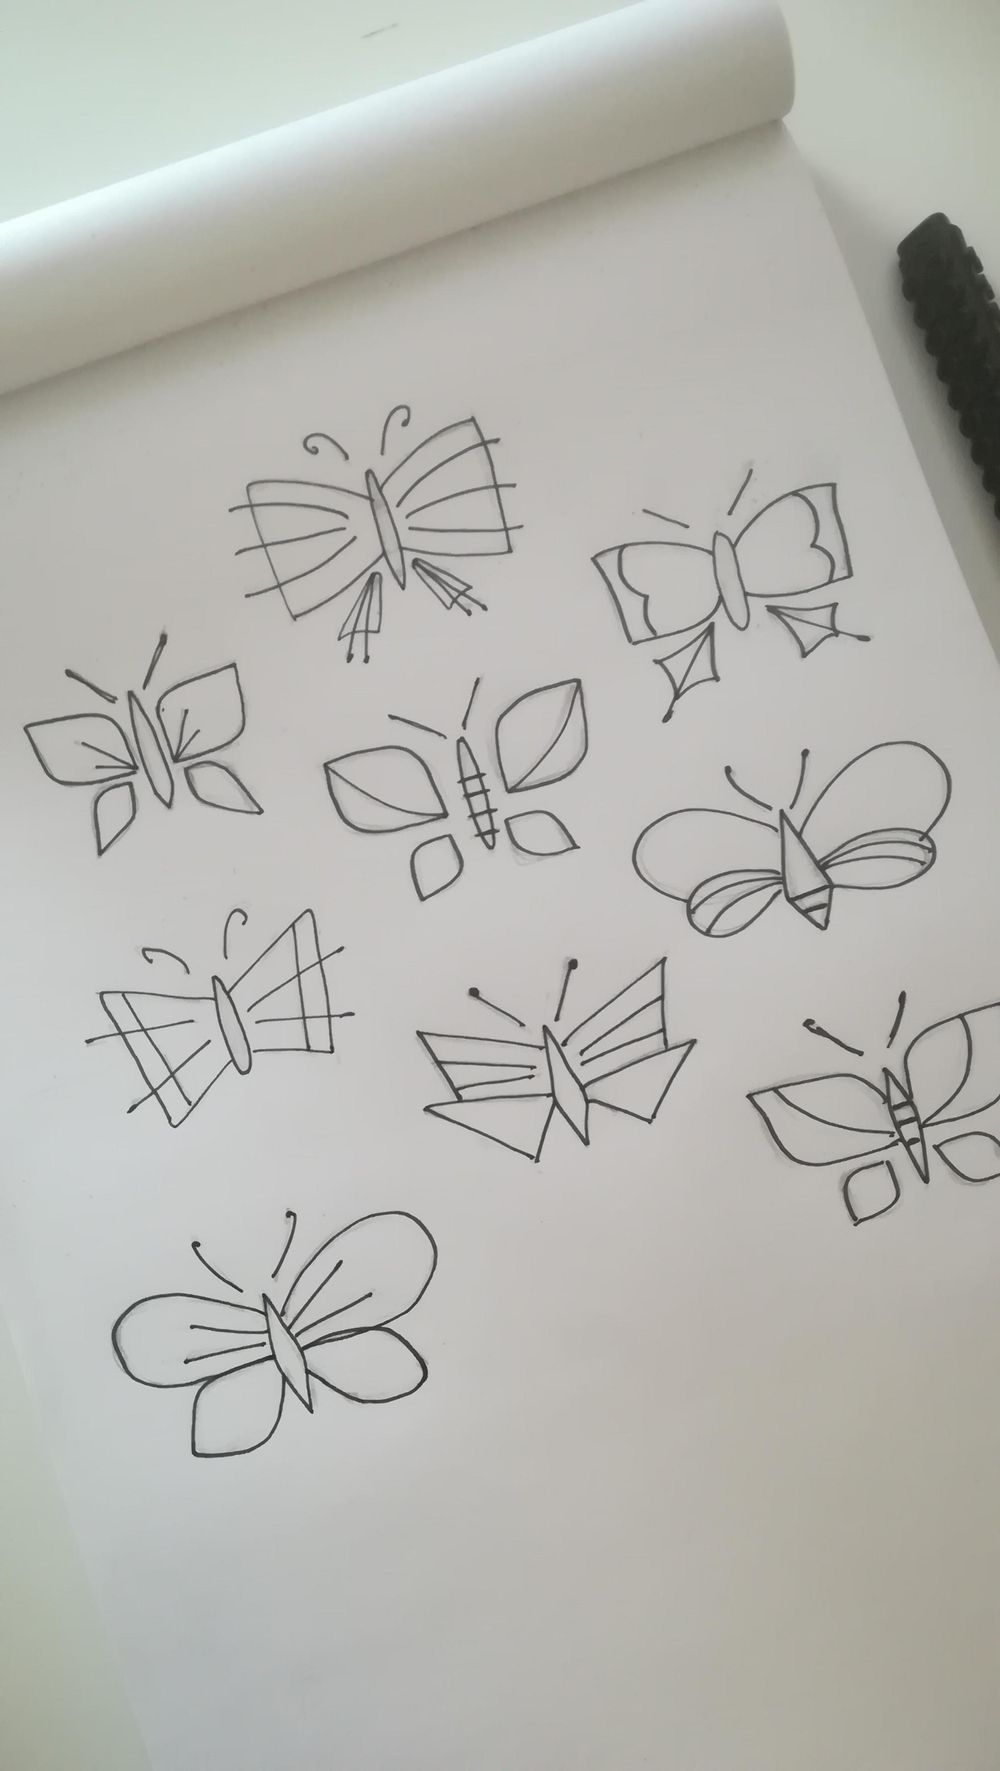 Drawing butterflies - image 1 - student project